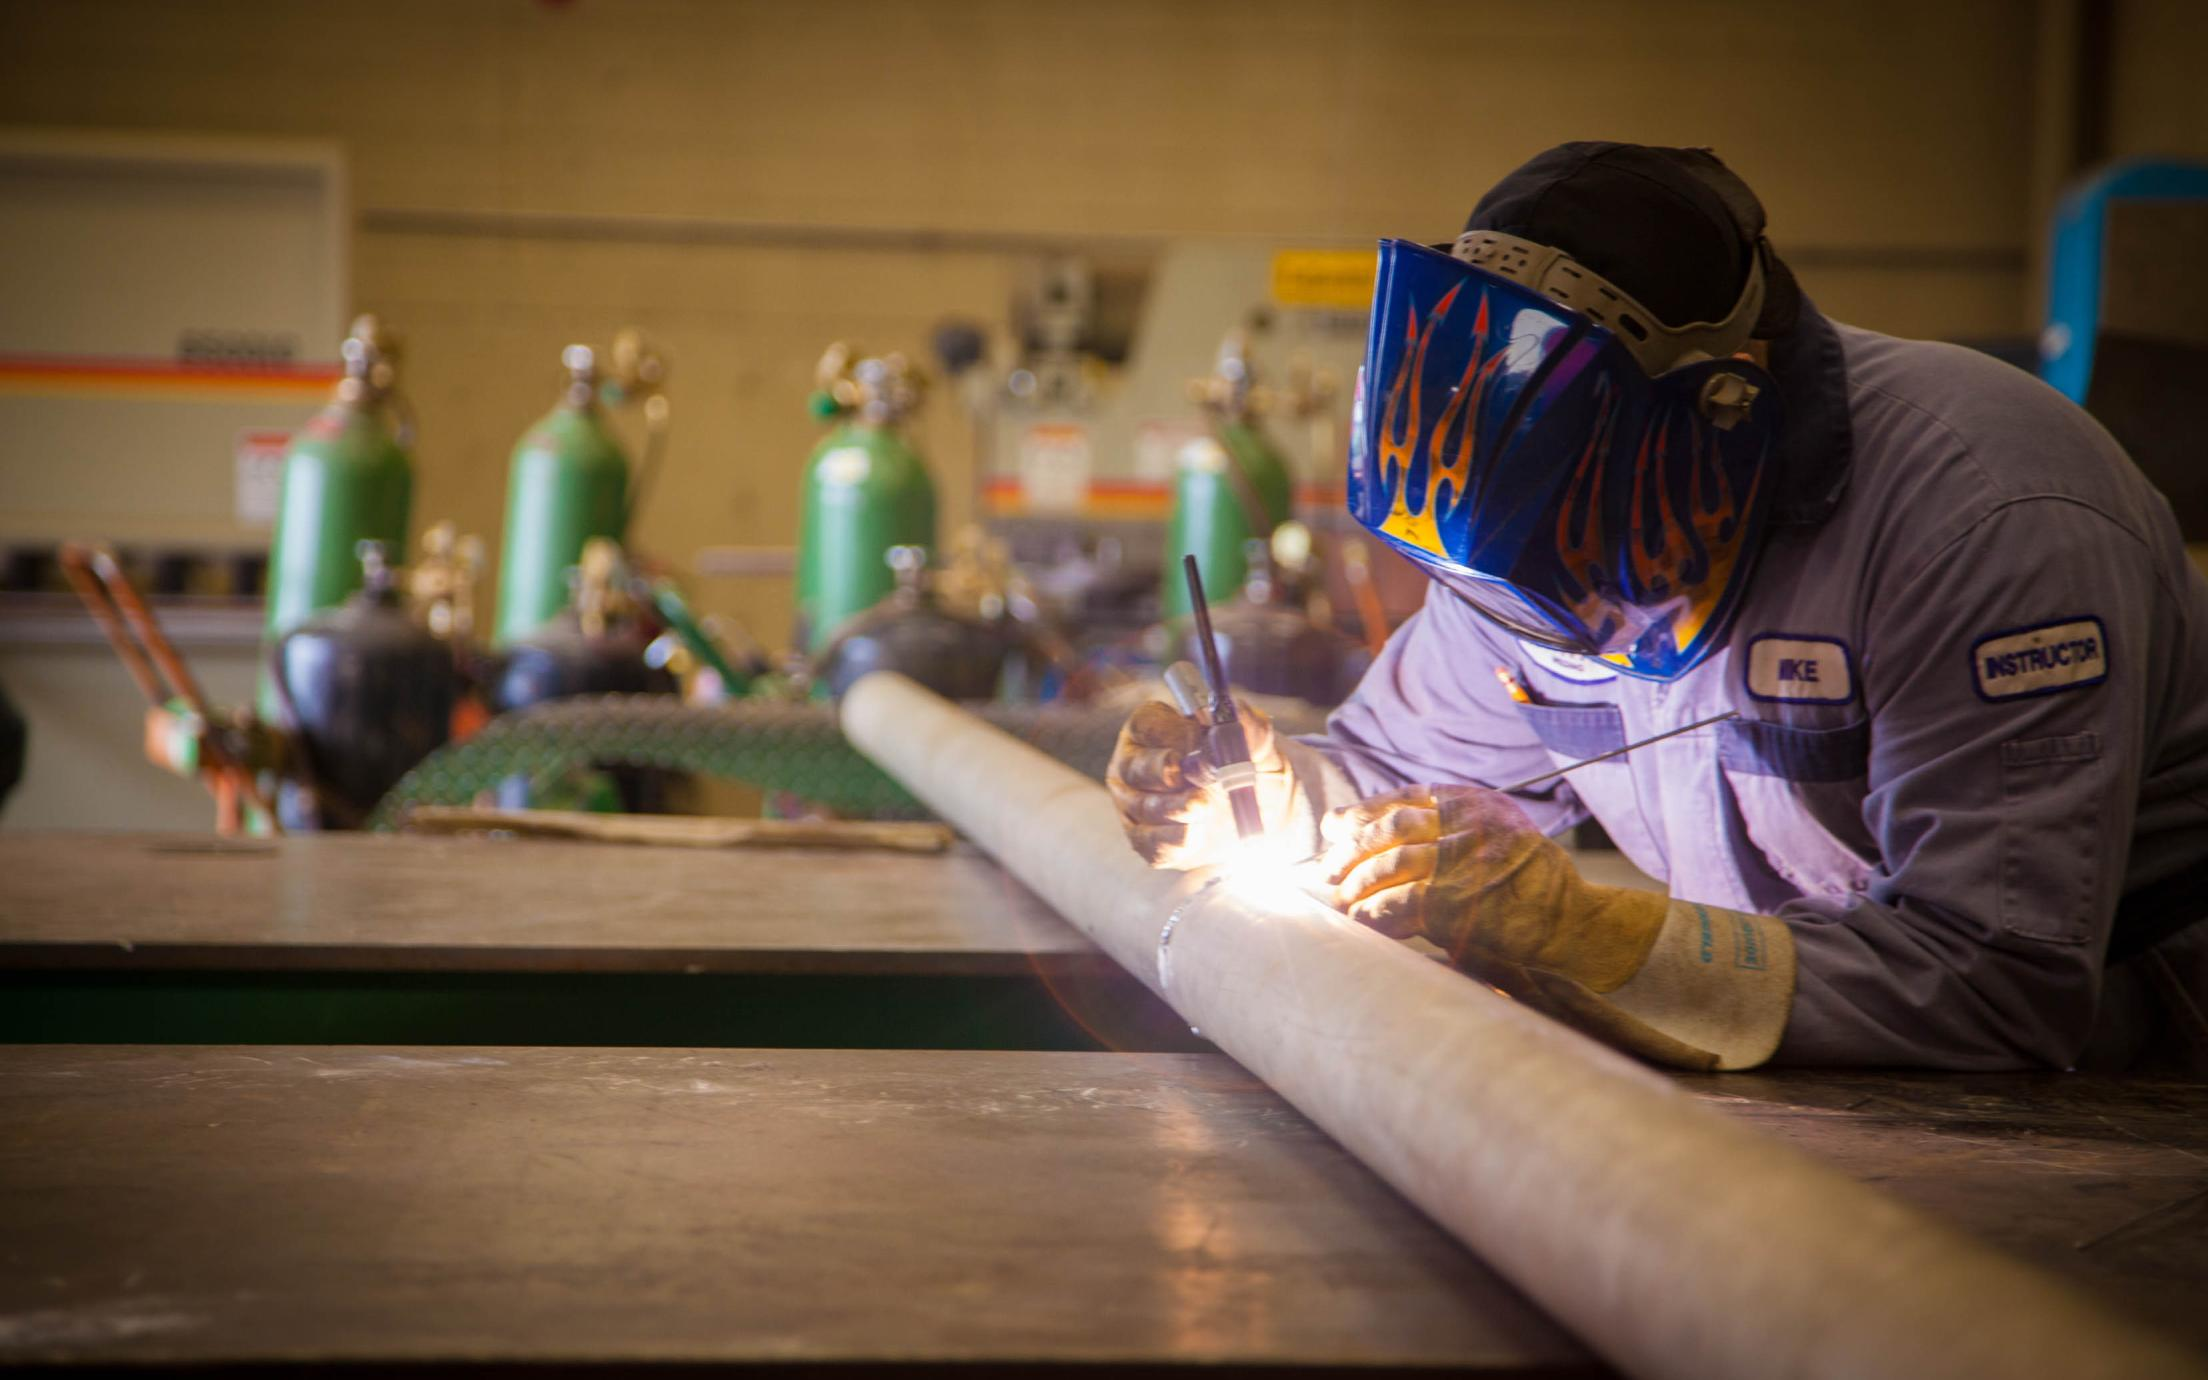 A VIU's Welding certificate student is welding a pipe